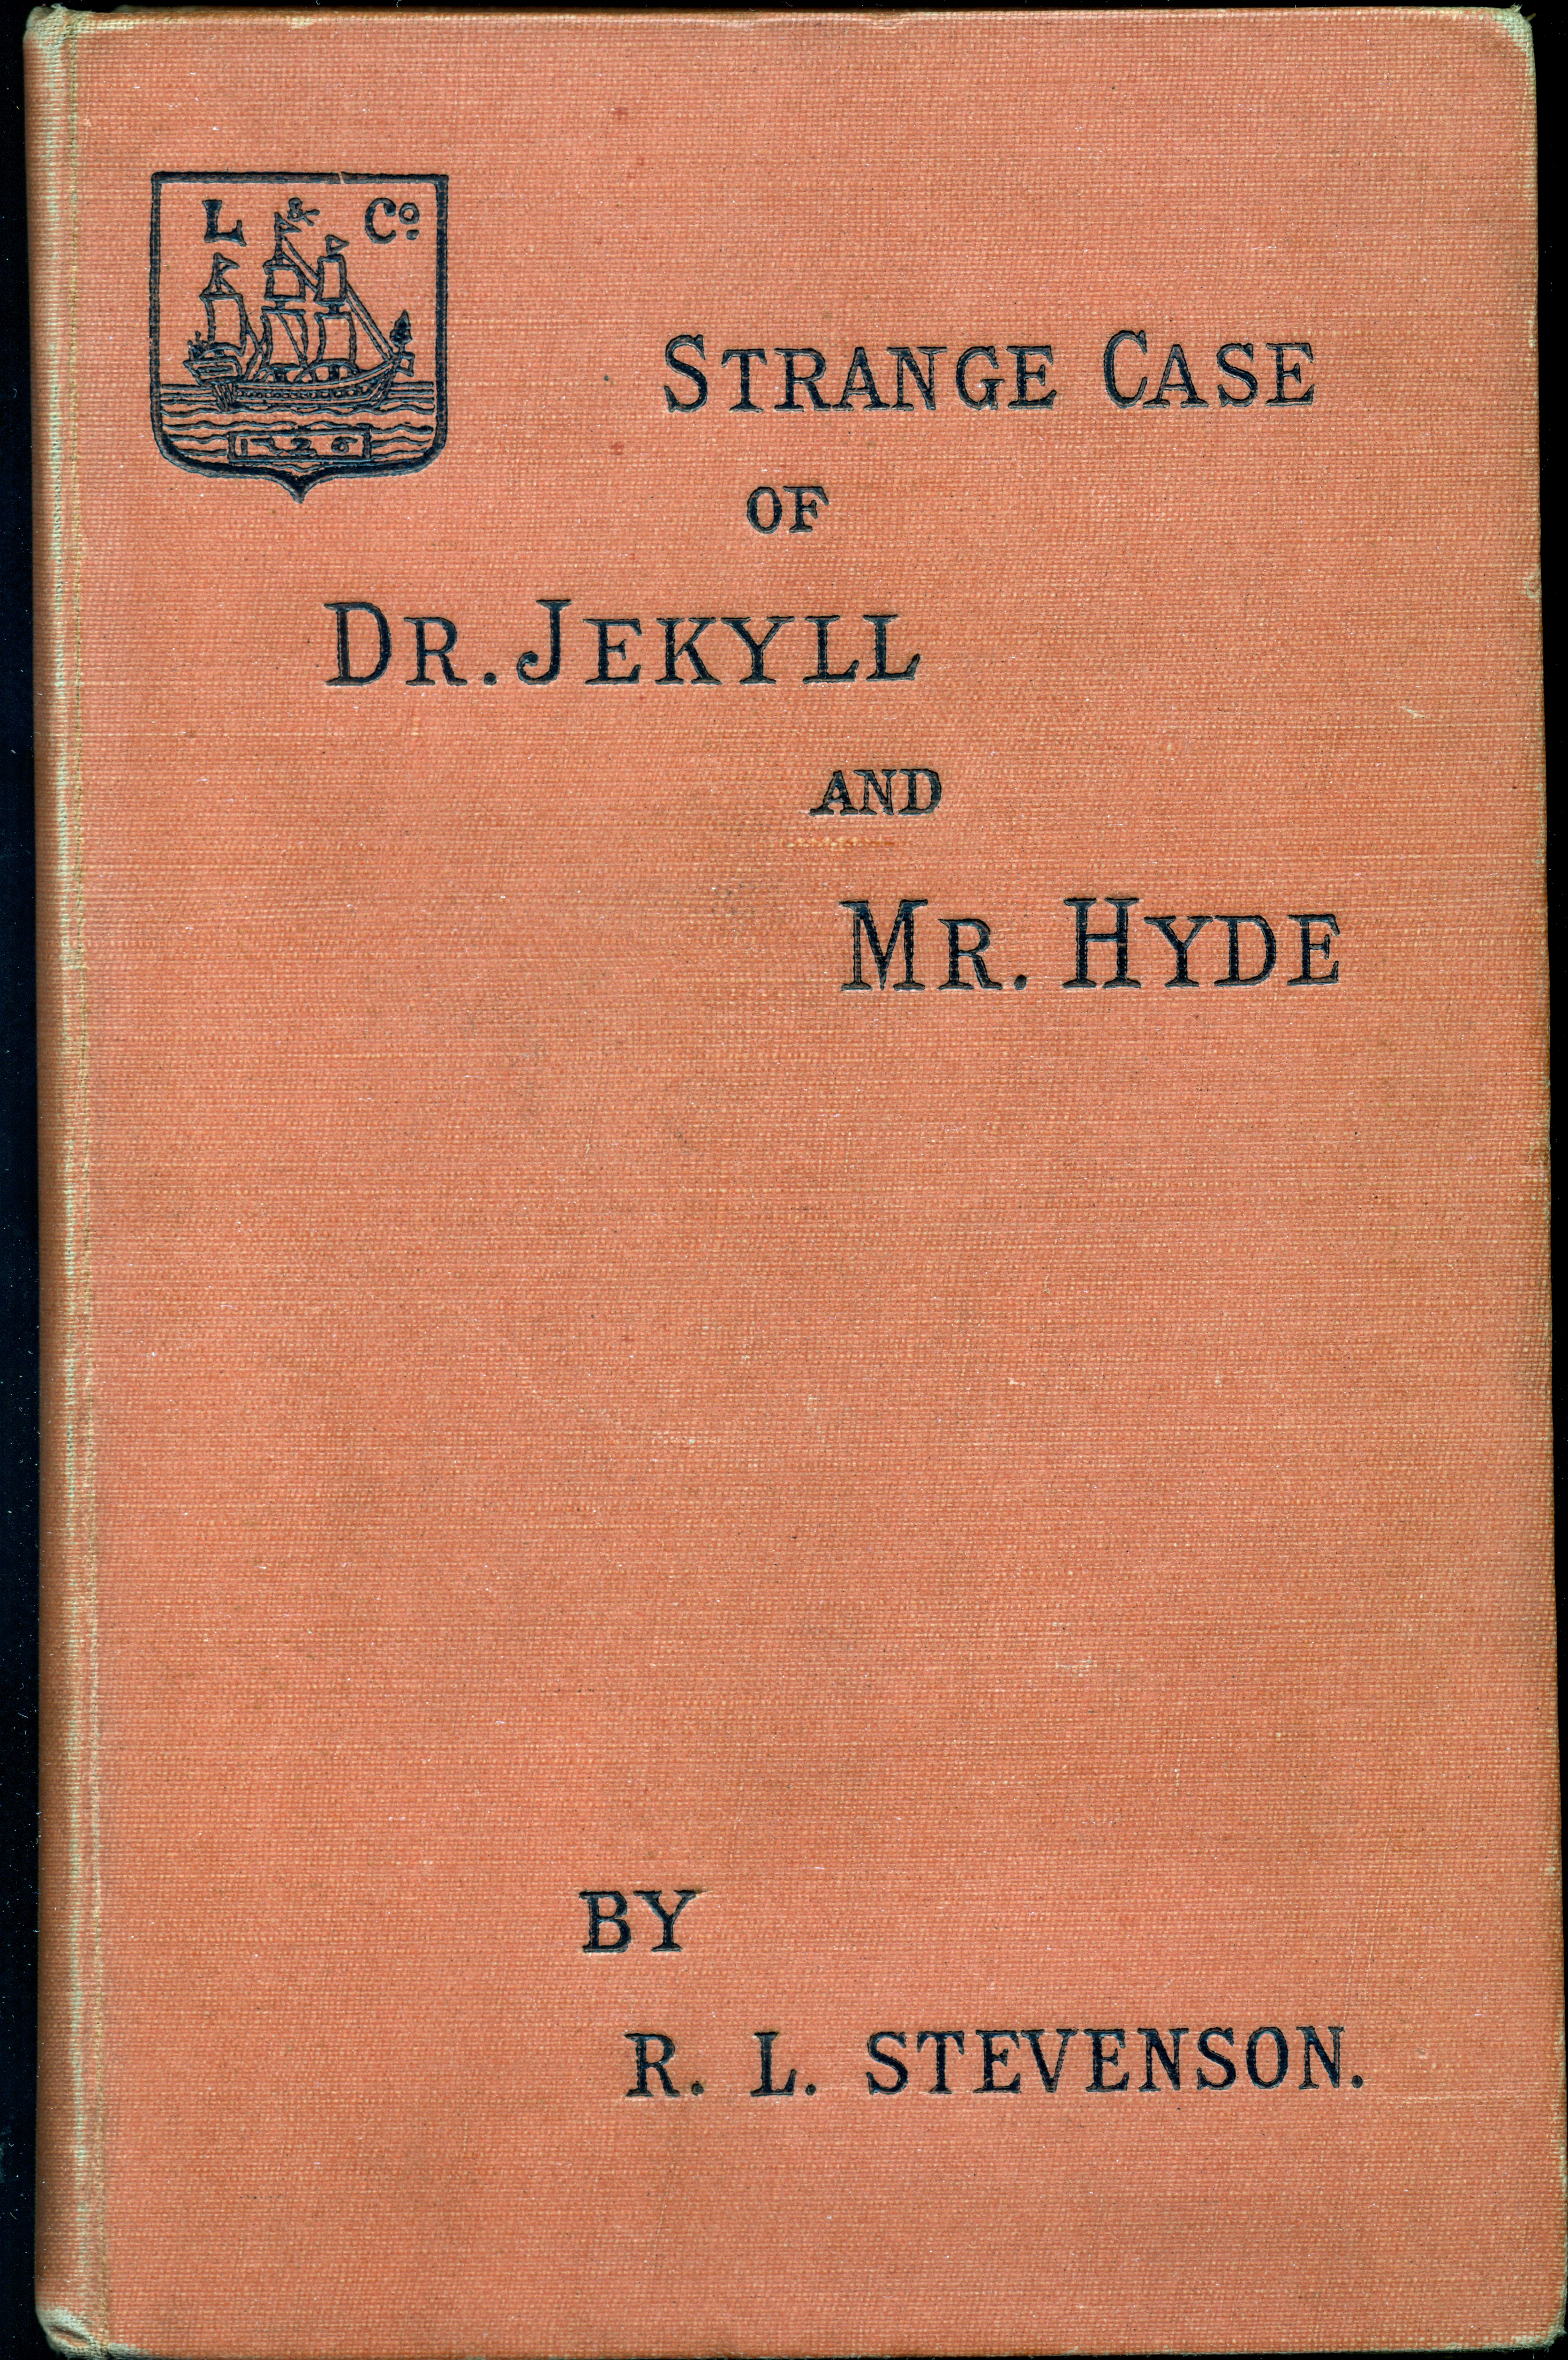 the strange case of dr jekyll and mr hyde 10 essay The strange case of dr jekyll and mr hyde by robert louis stevenson 2416 words | 10 pages the strange case of dr jekyll and mr hyde by robert louis stevenson good.